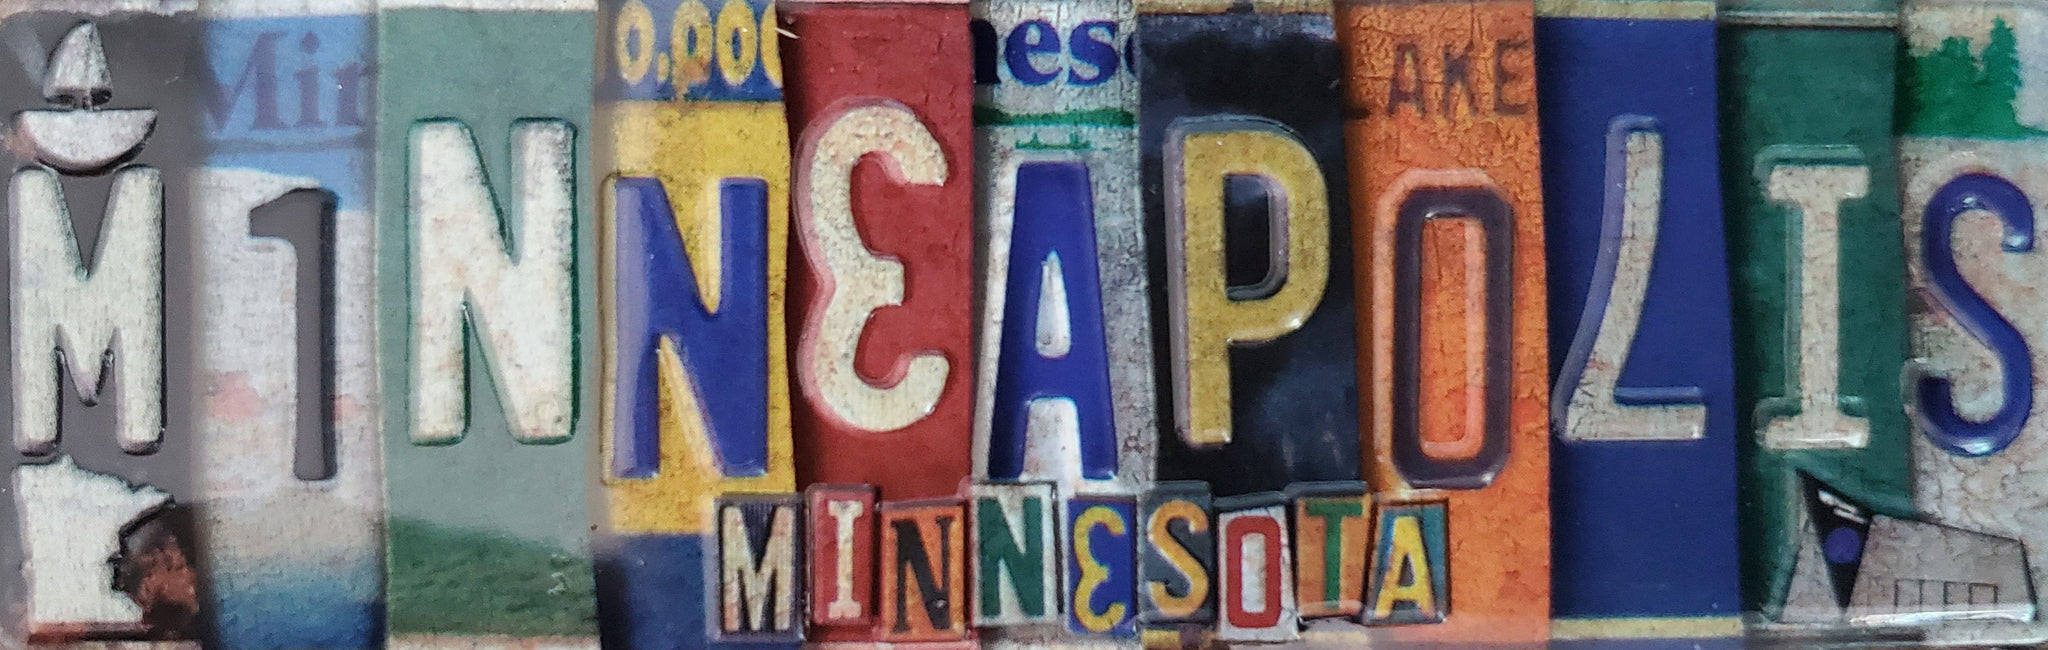 Minneapolis MN License Plate - Magnet